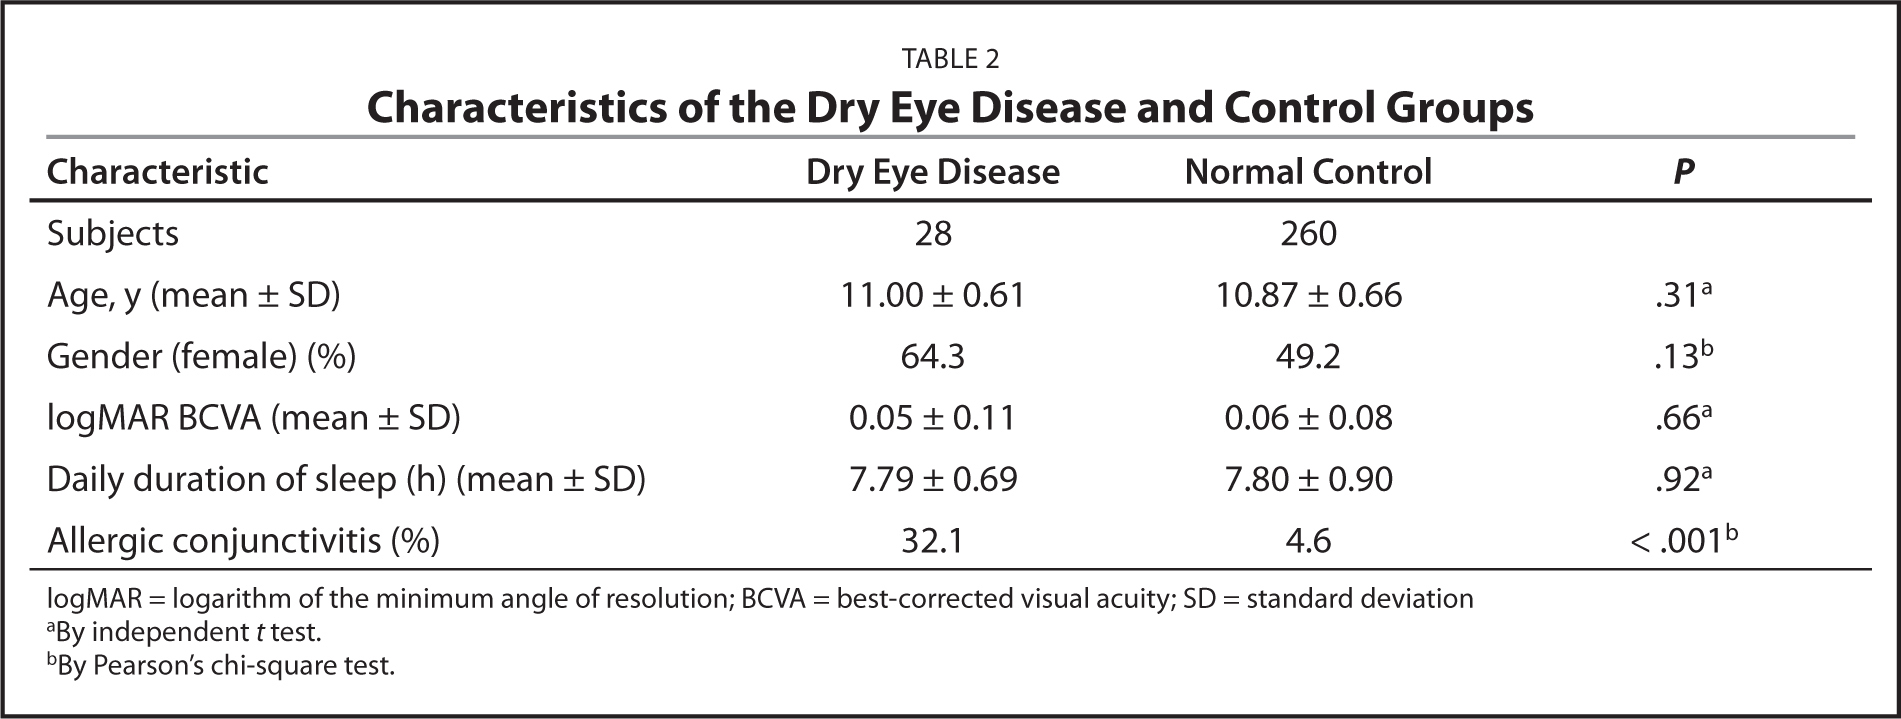 Characteristics of the Dry Eye Disease and Control Groups